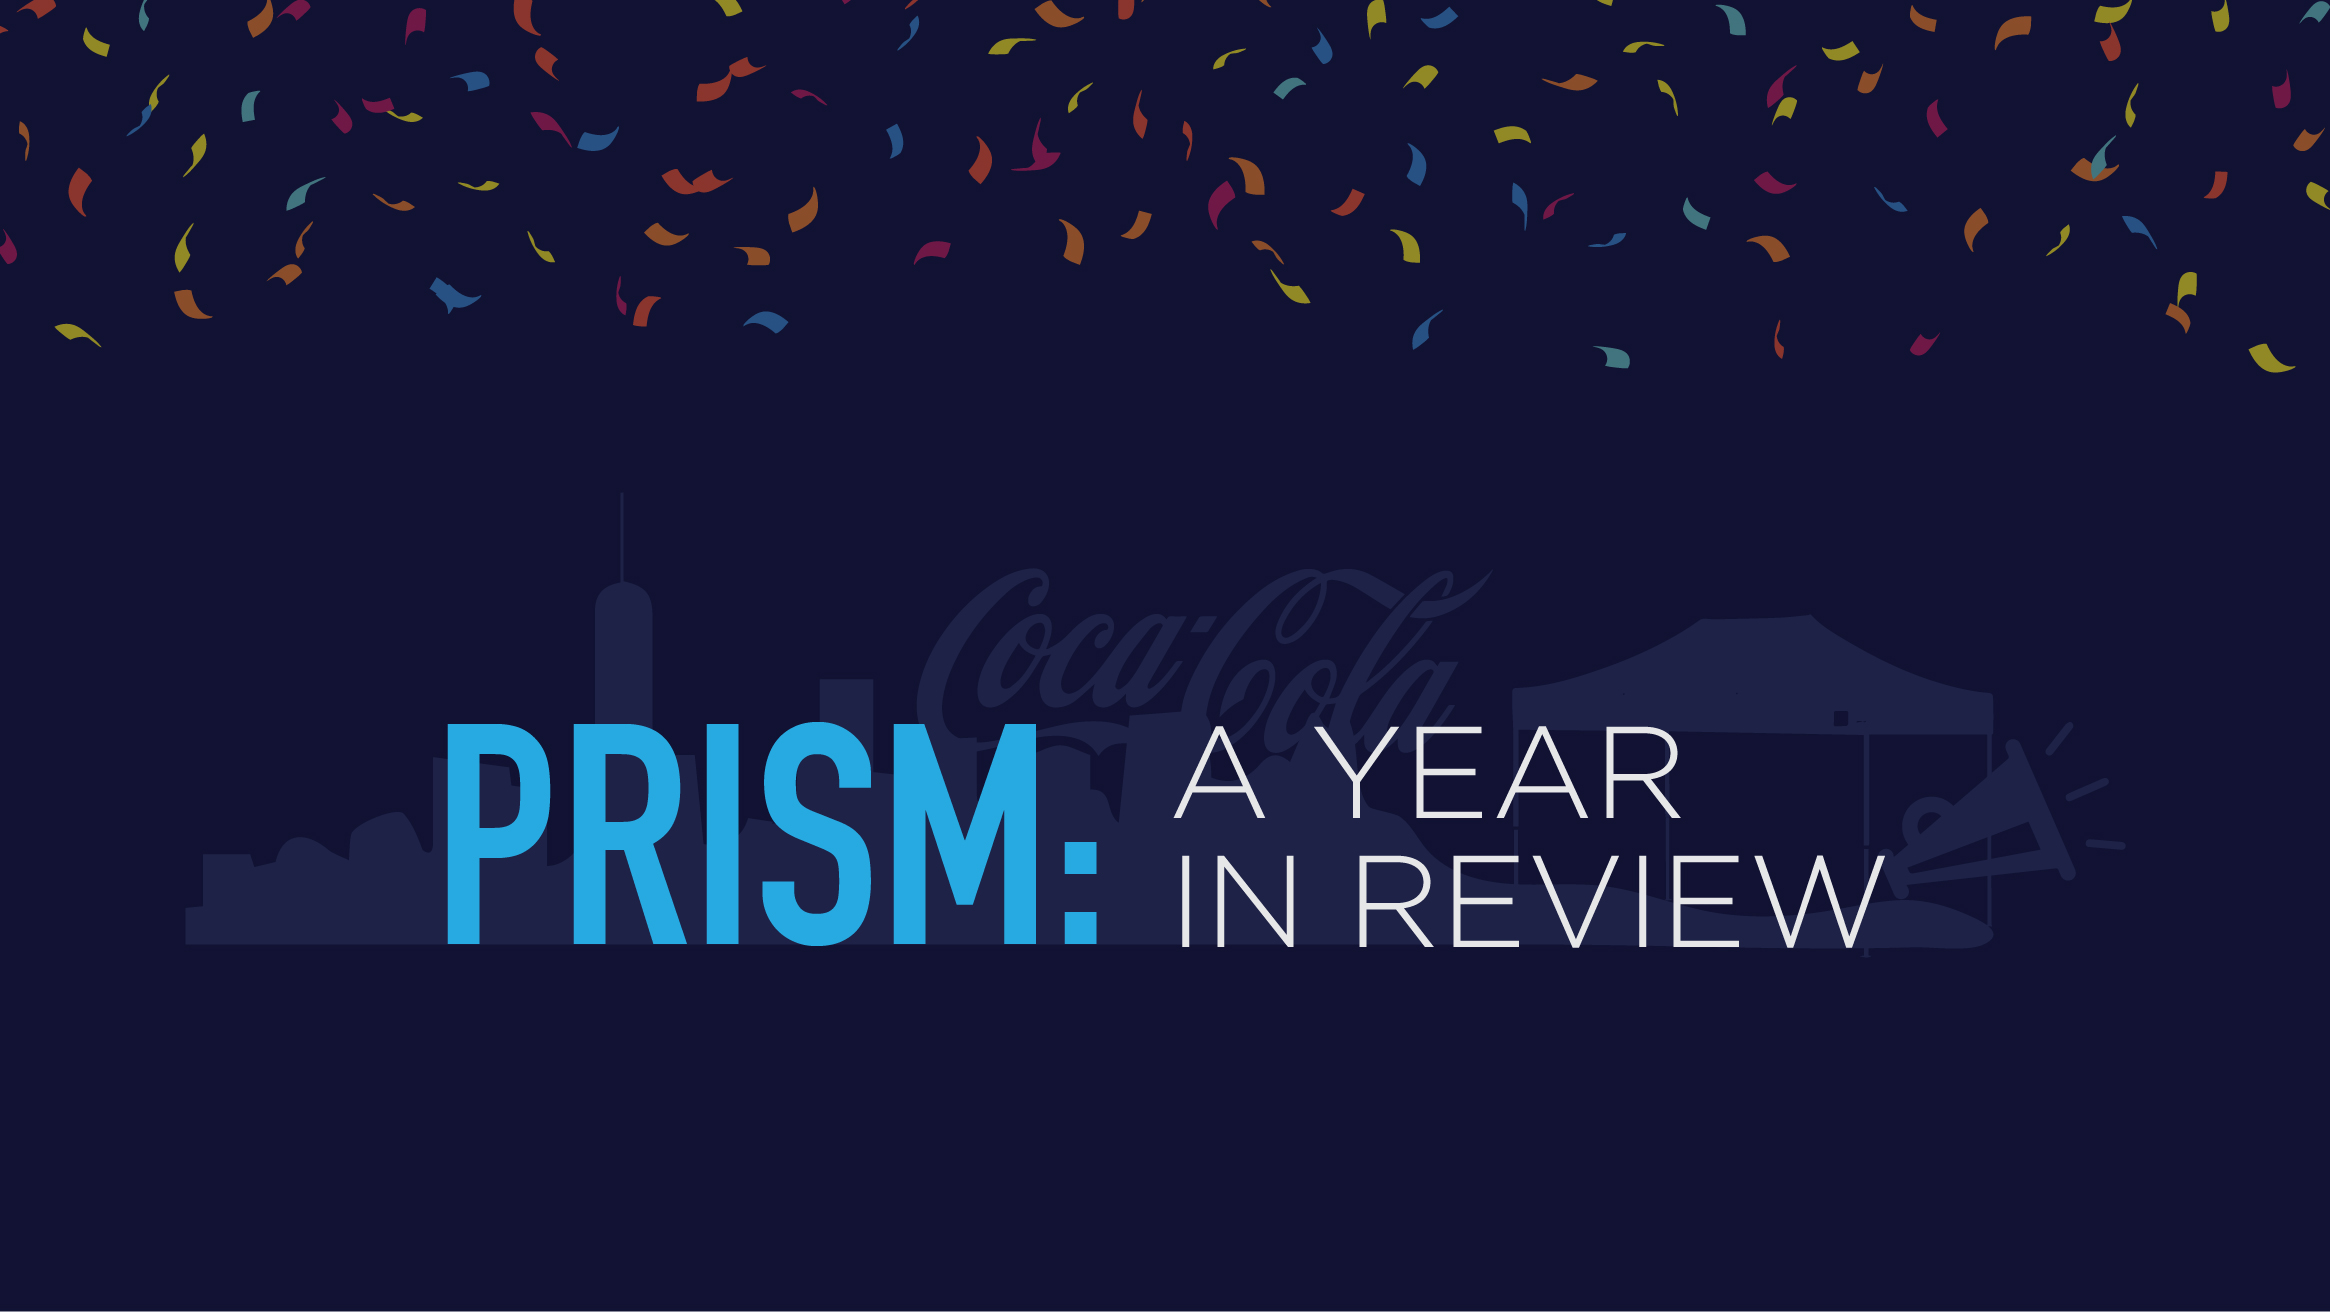 A Year in Review-01.jpg